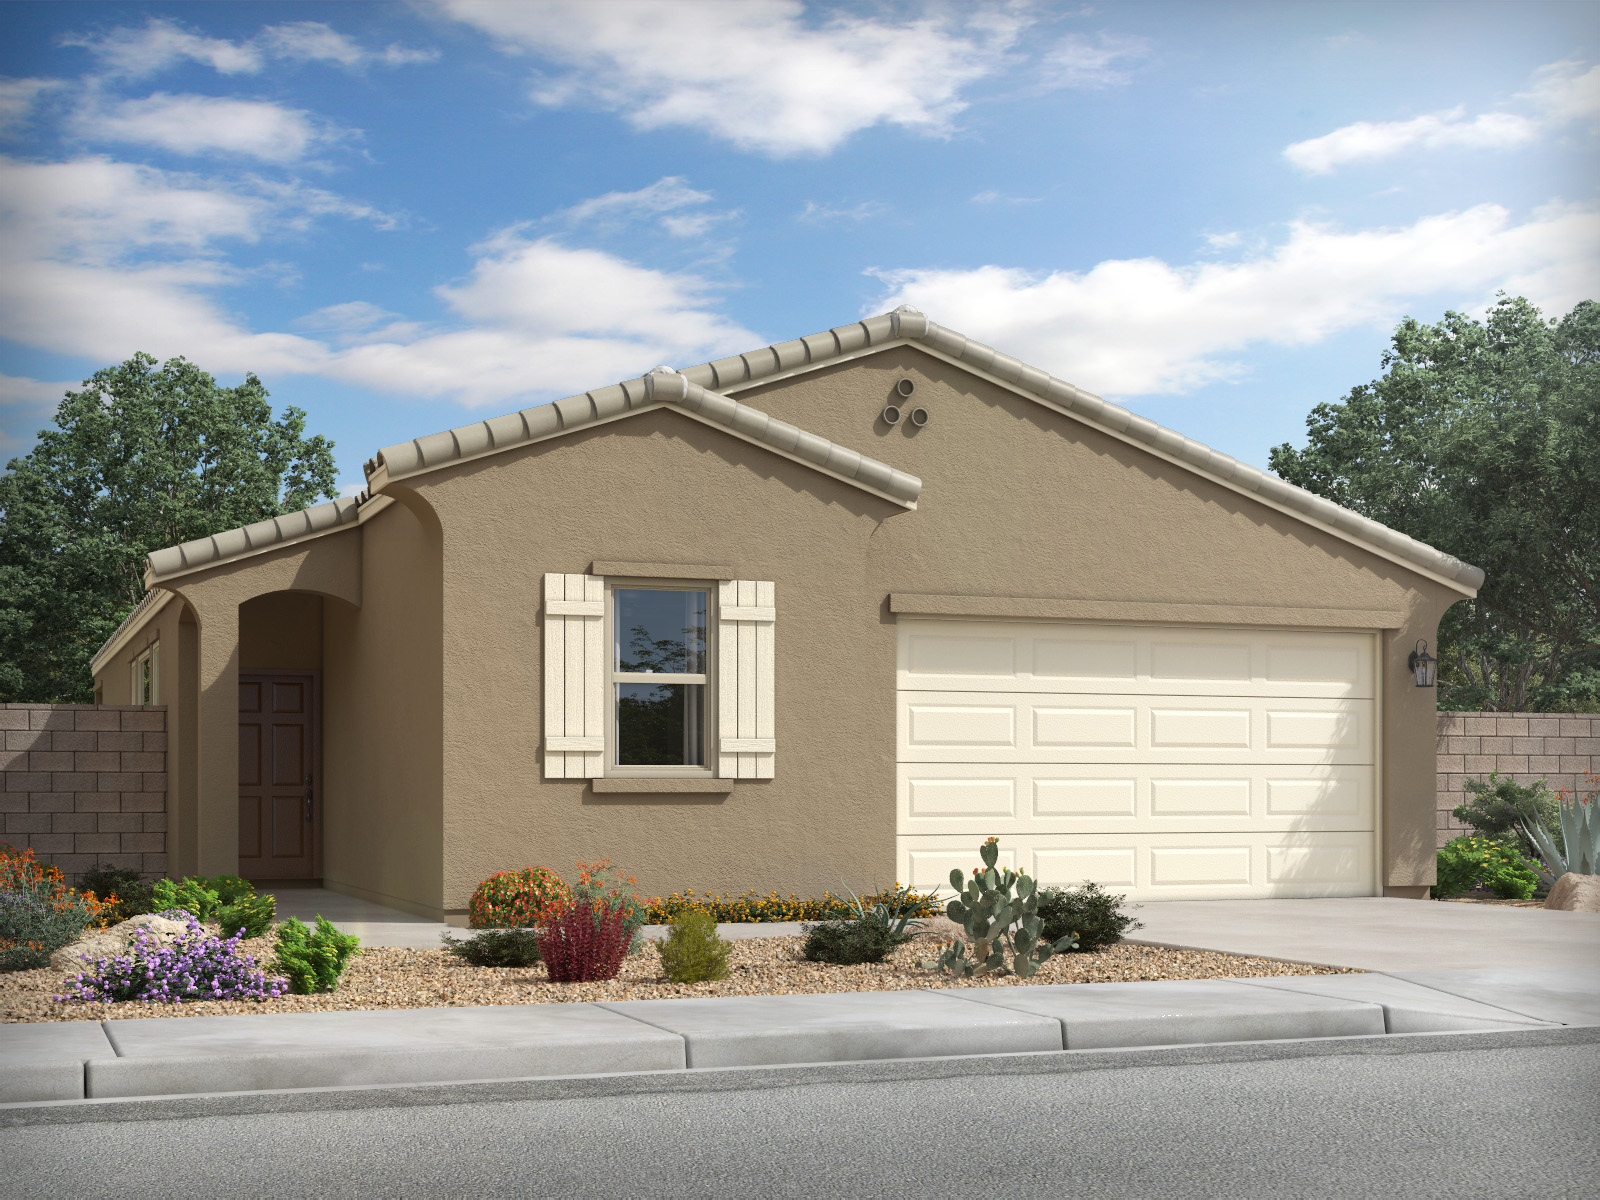 Eclipse Model 4br 2ba Homes For Sale In San Tan Valley Az